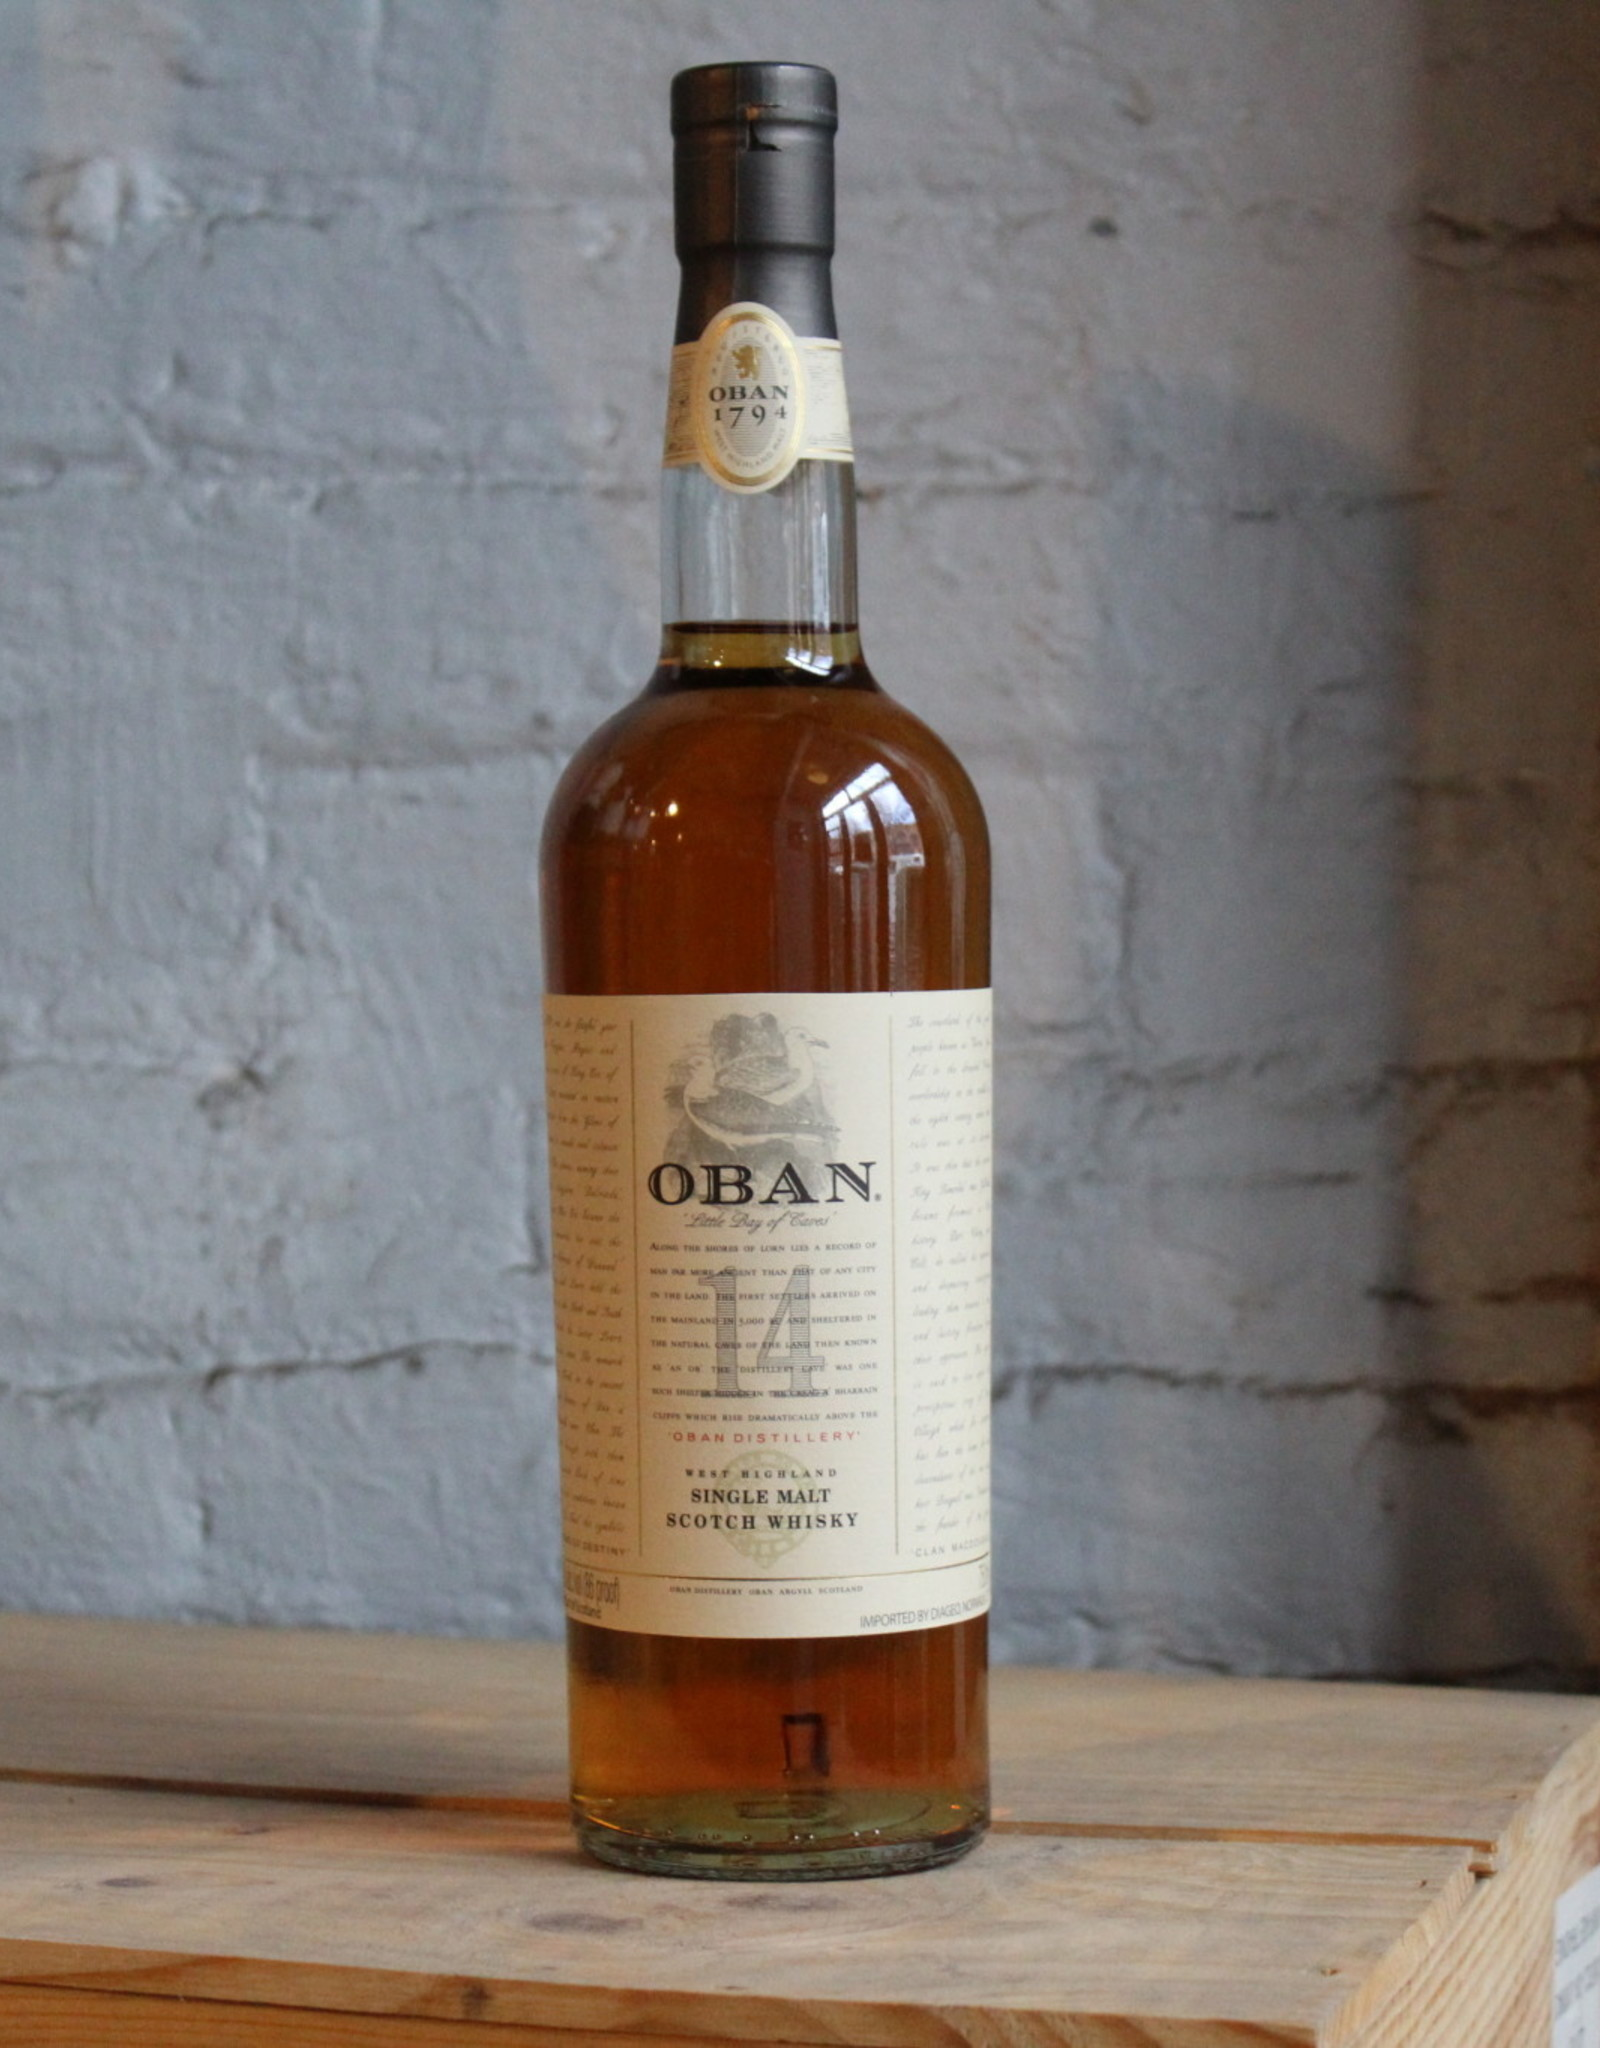 Oban 14 Yr Single Malt Scotch Whisky - West Highland, Scotland (750ml)